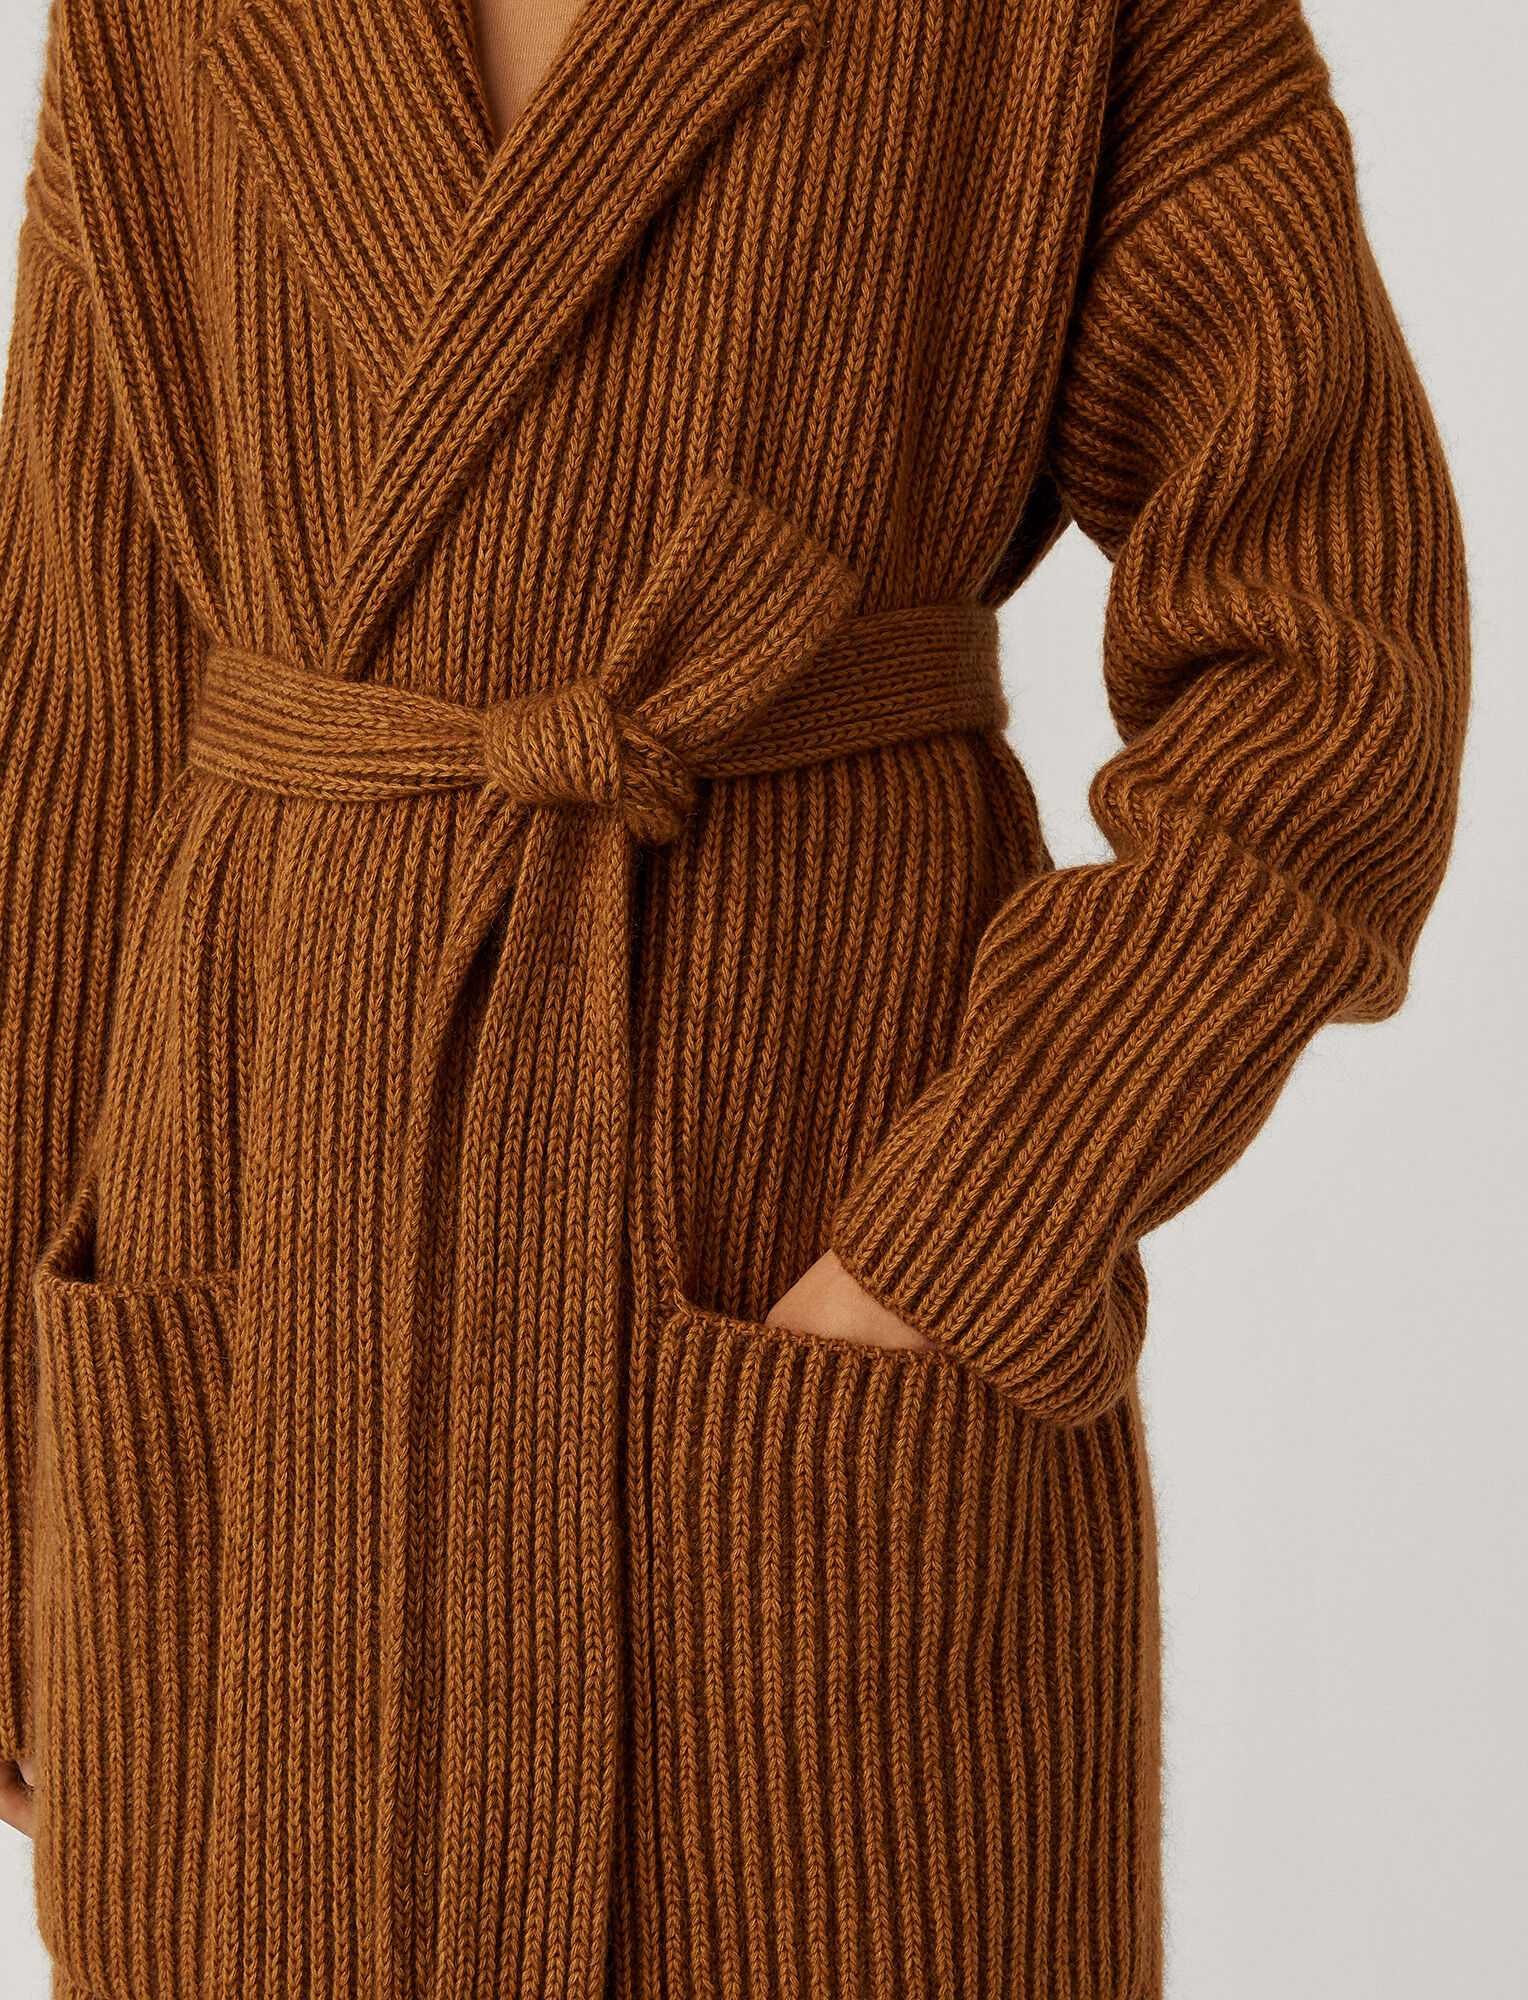 Joseph, Coat Cote Anglaise Novelty Knit, in Camel